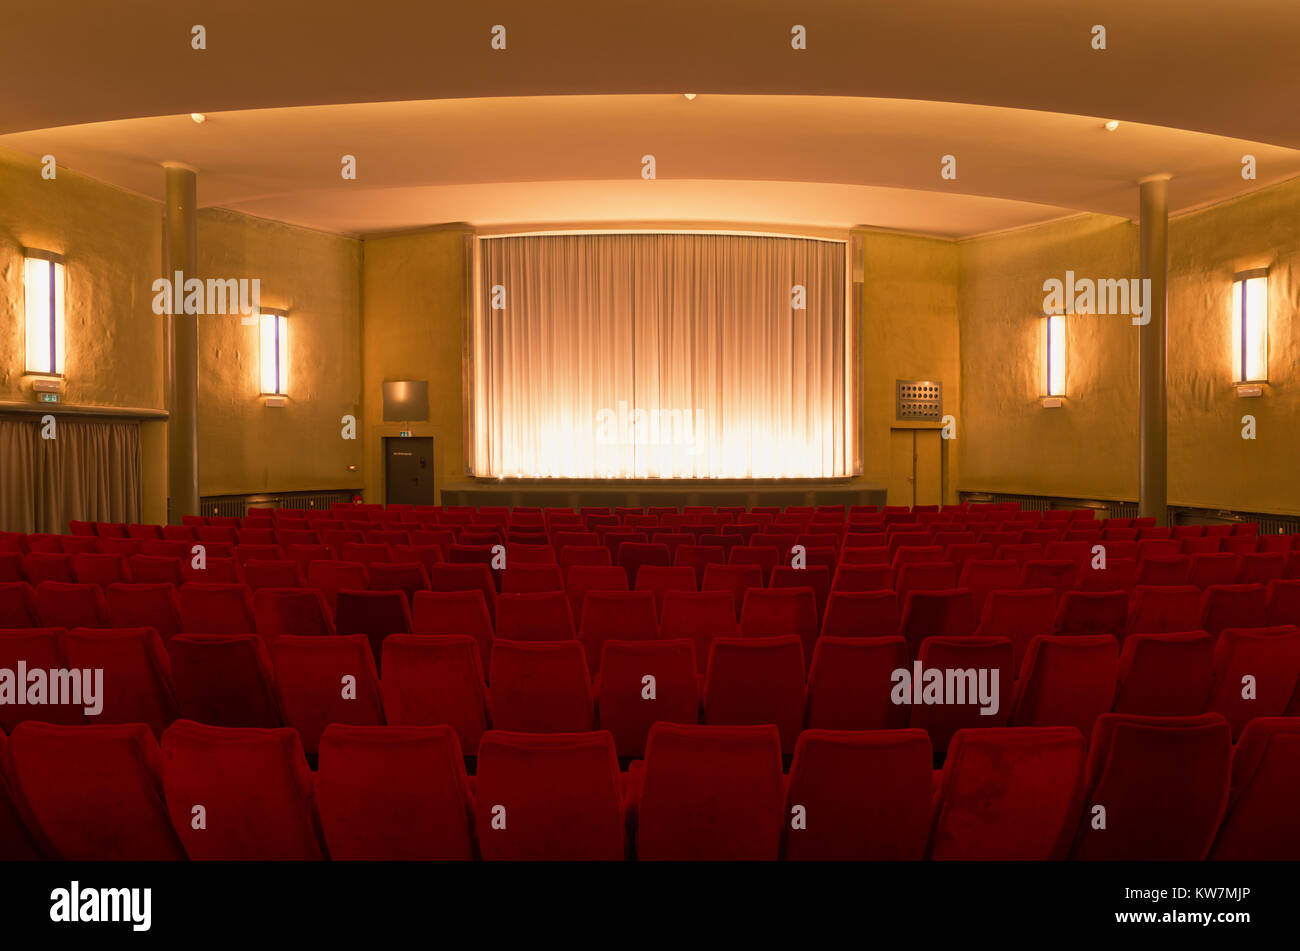 Anzeiger Hochhaus, Kino, Madsack, Hannover - Stock Image